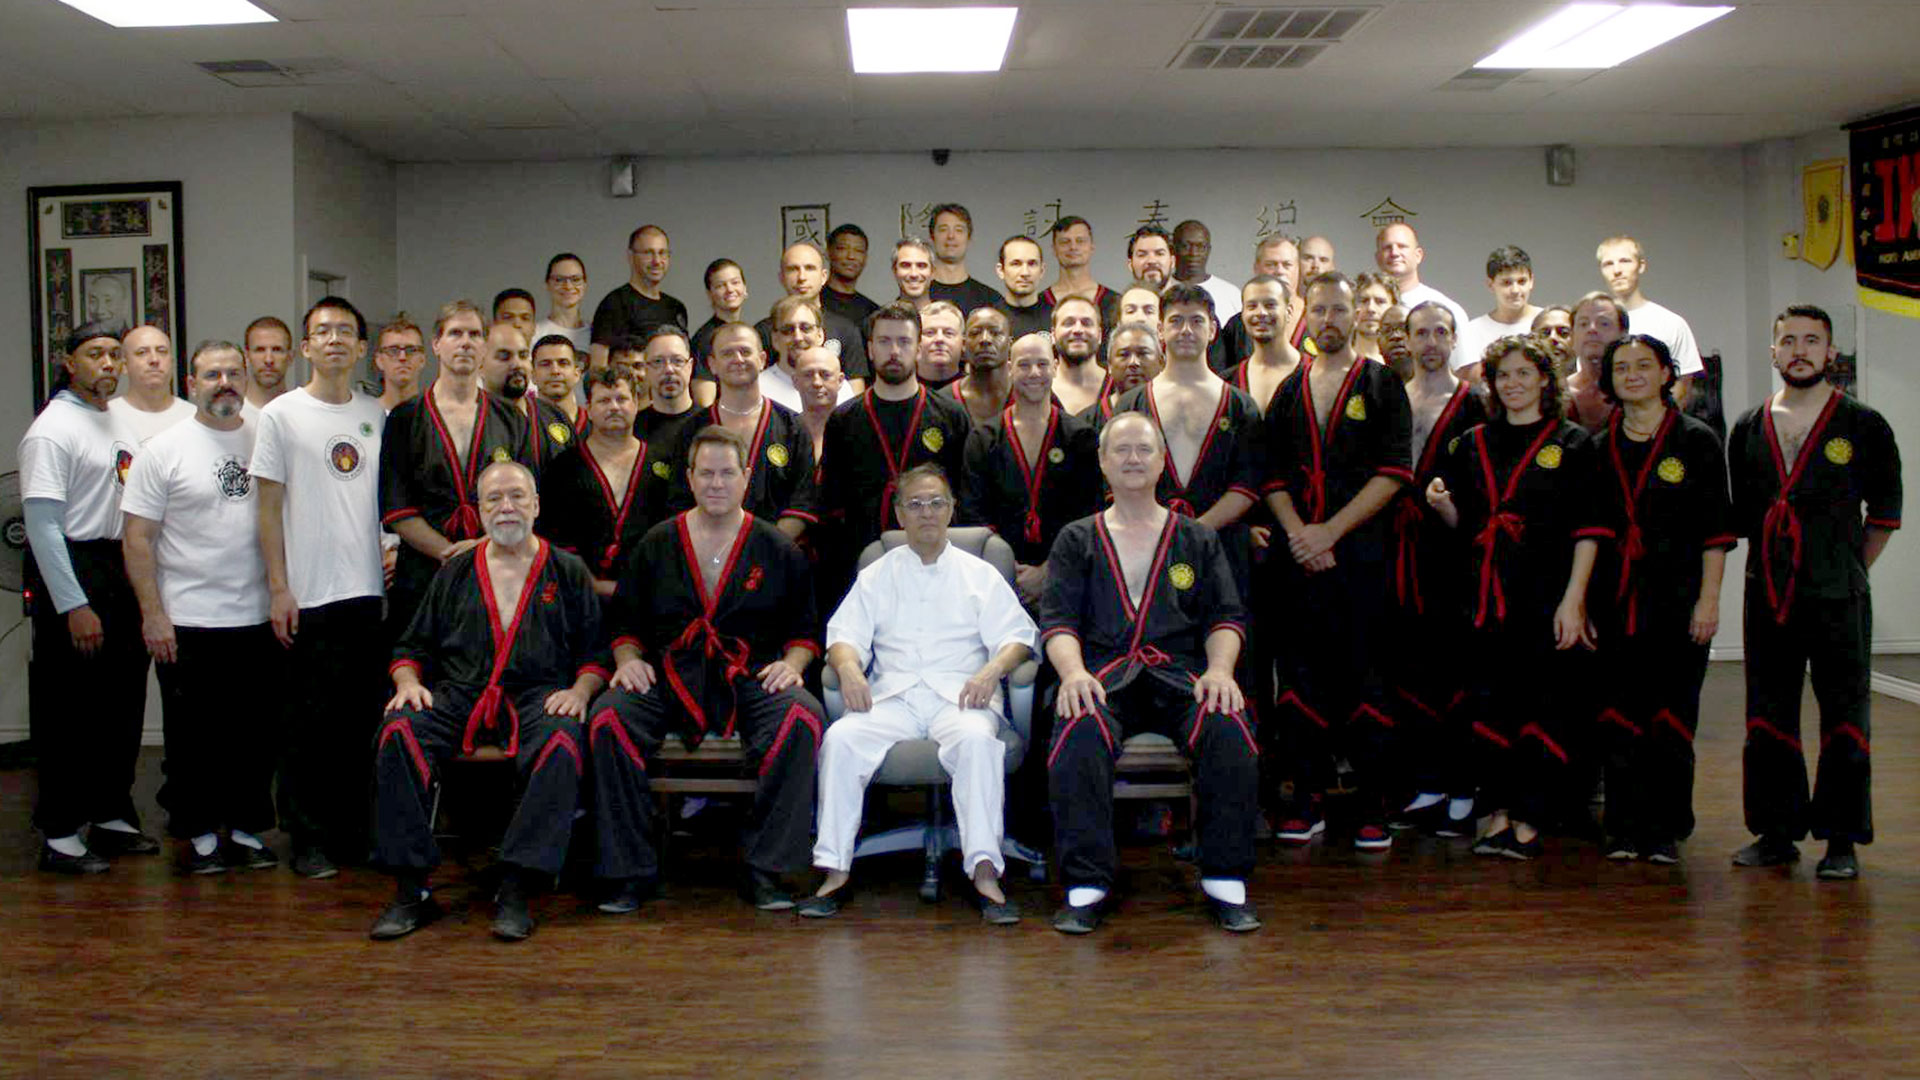 2017 San Antonio GGM Leung Ting WingTsun Seminar Group Photo